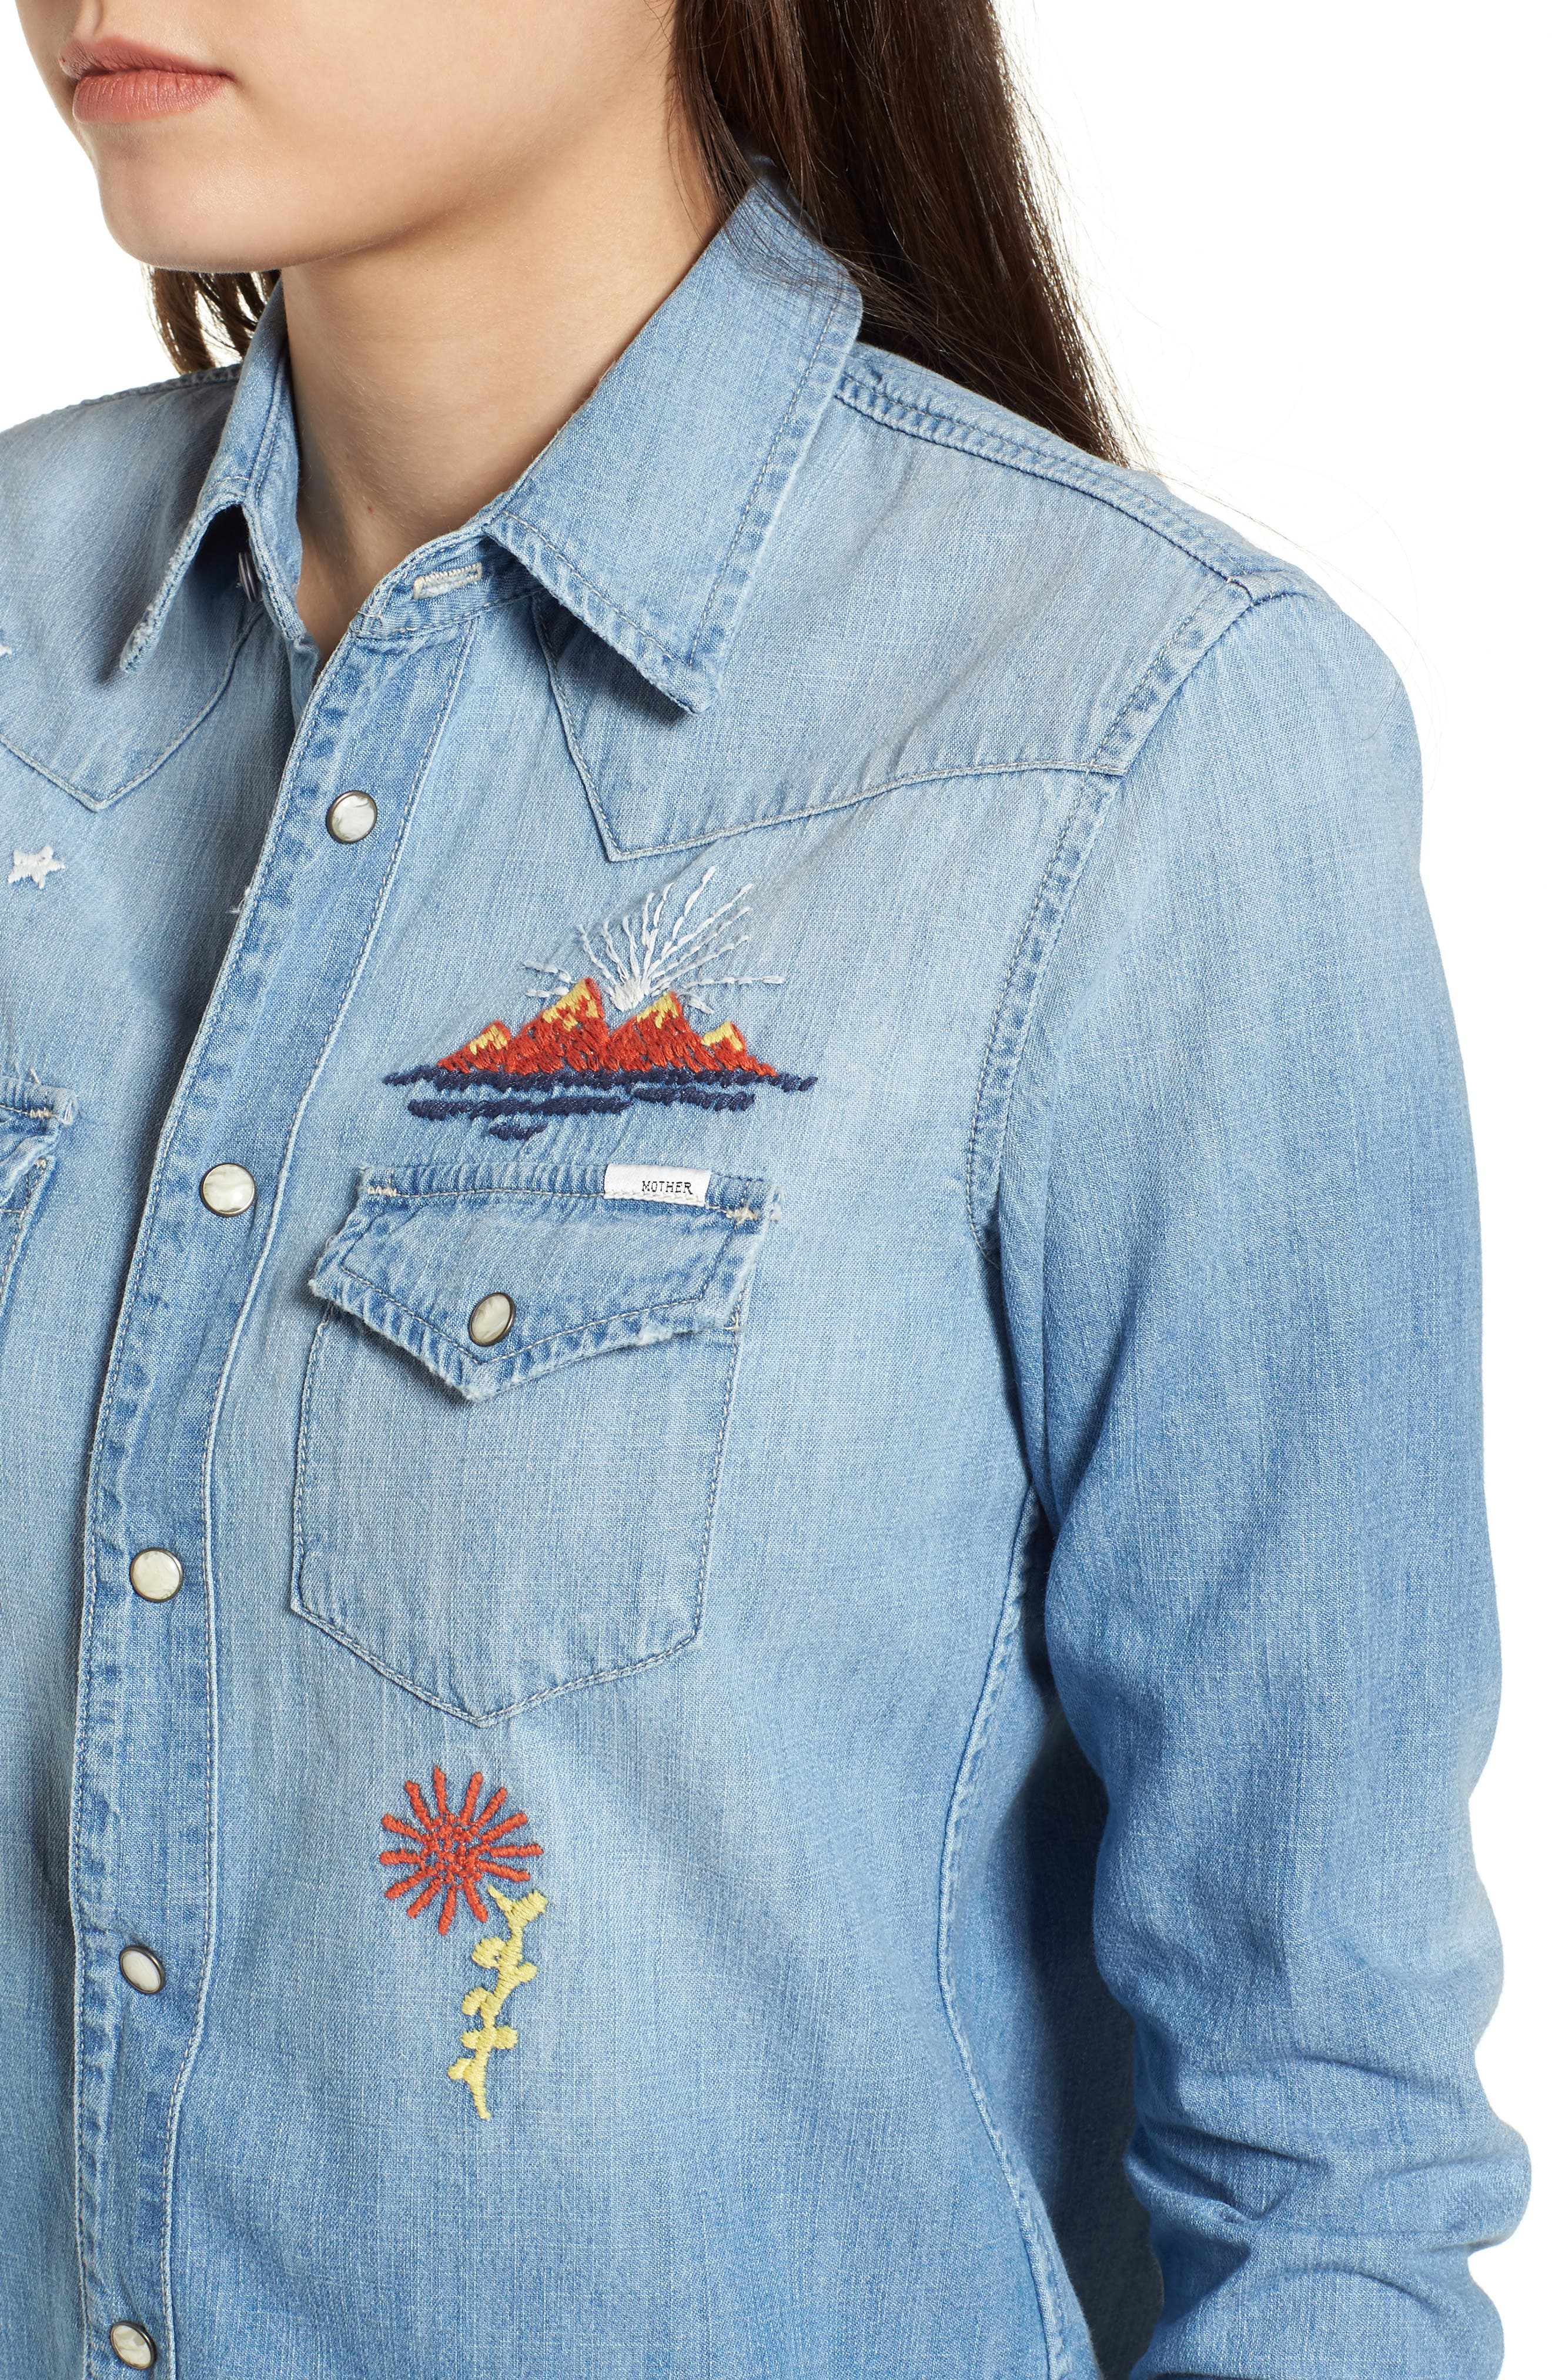 All My Ex's Embroidered Denim Shirt,                             Alternate thumbnail 4, color,                             400